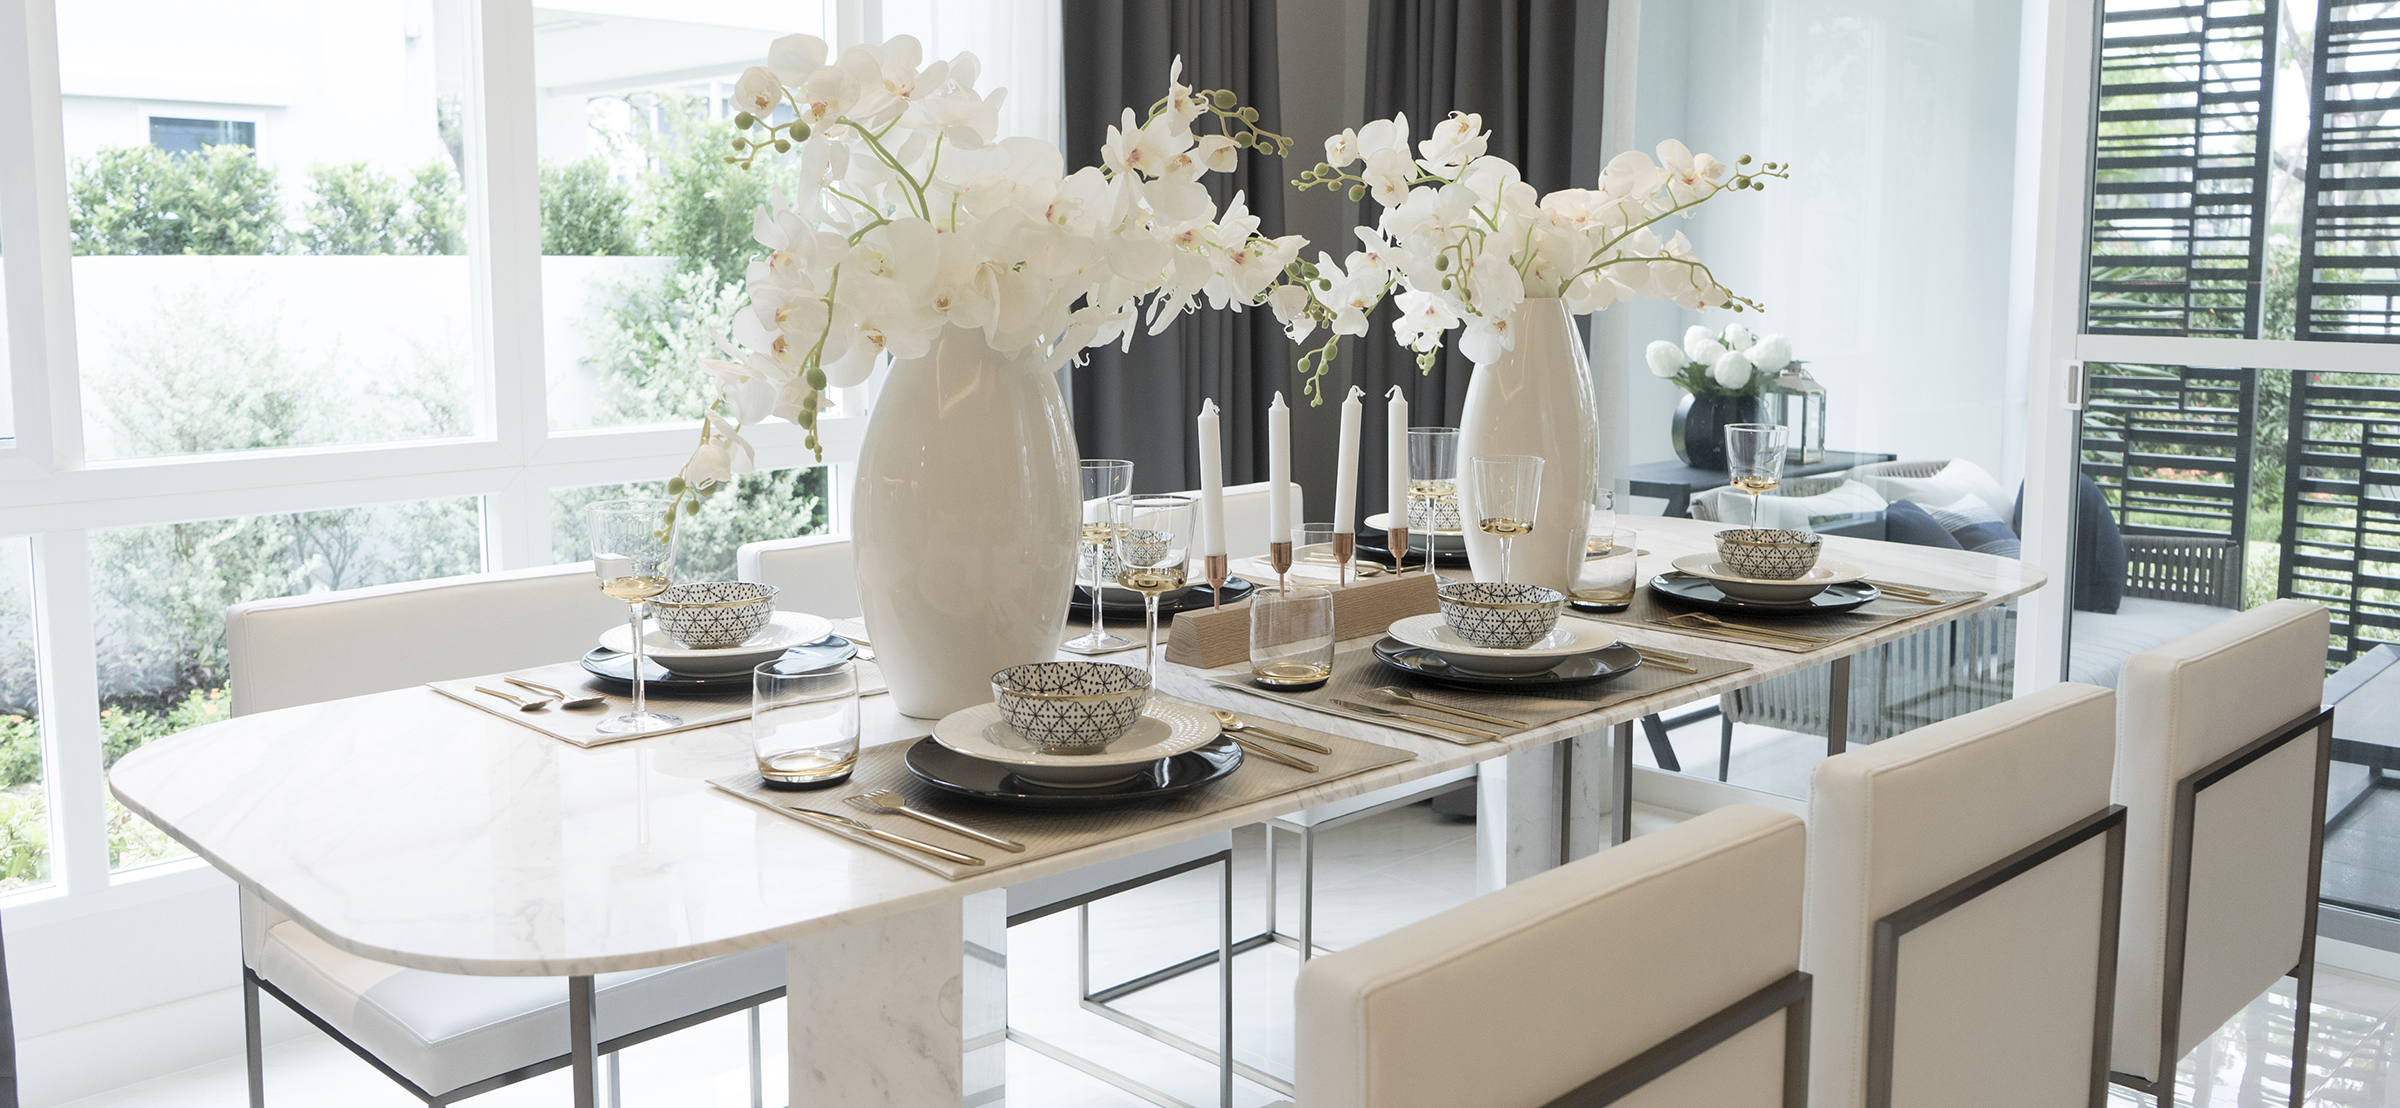 Beautiful Luxury Dining Table with Plate Settings at Home